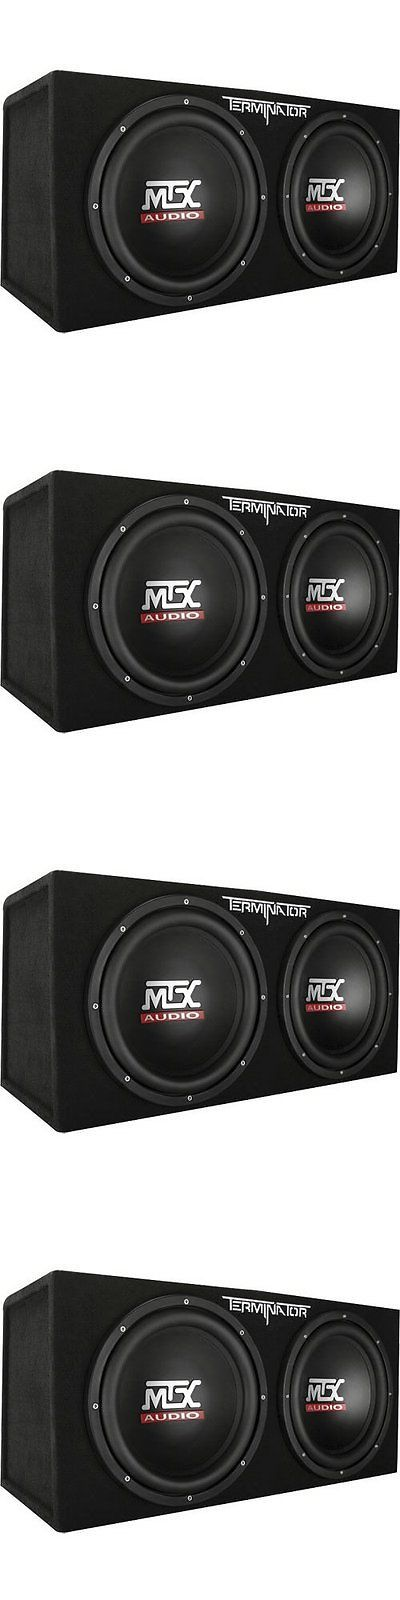 Car Subwoofers: Subwoofer Box 12 Inch Sub Dual Mtx Audio Terminator Series Tnp212d2 Enclosure BUY IT NOW ONLY: $189.99